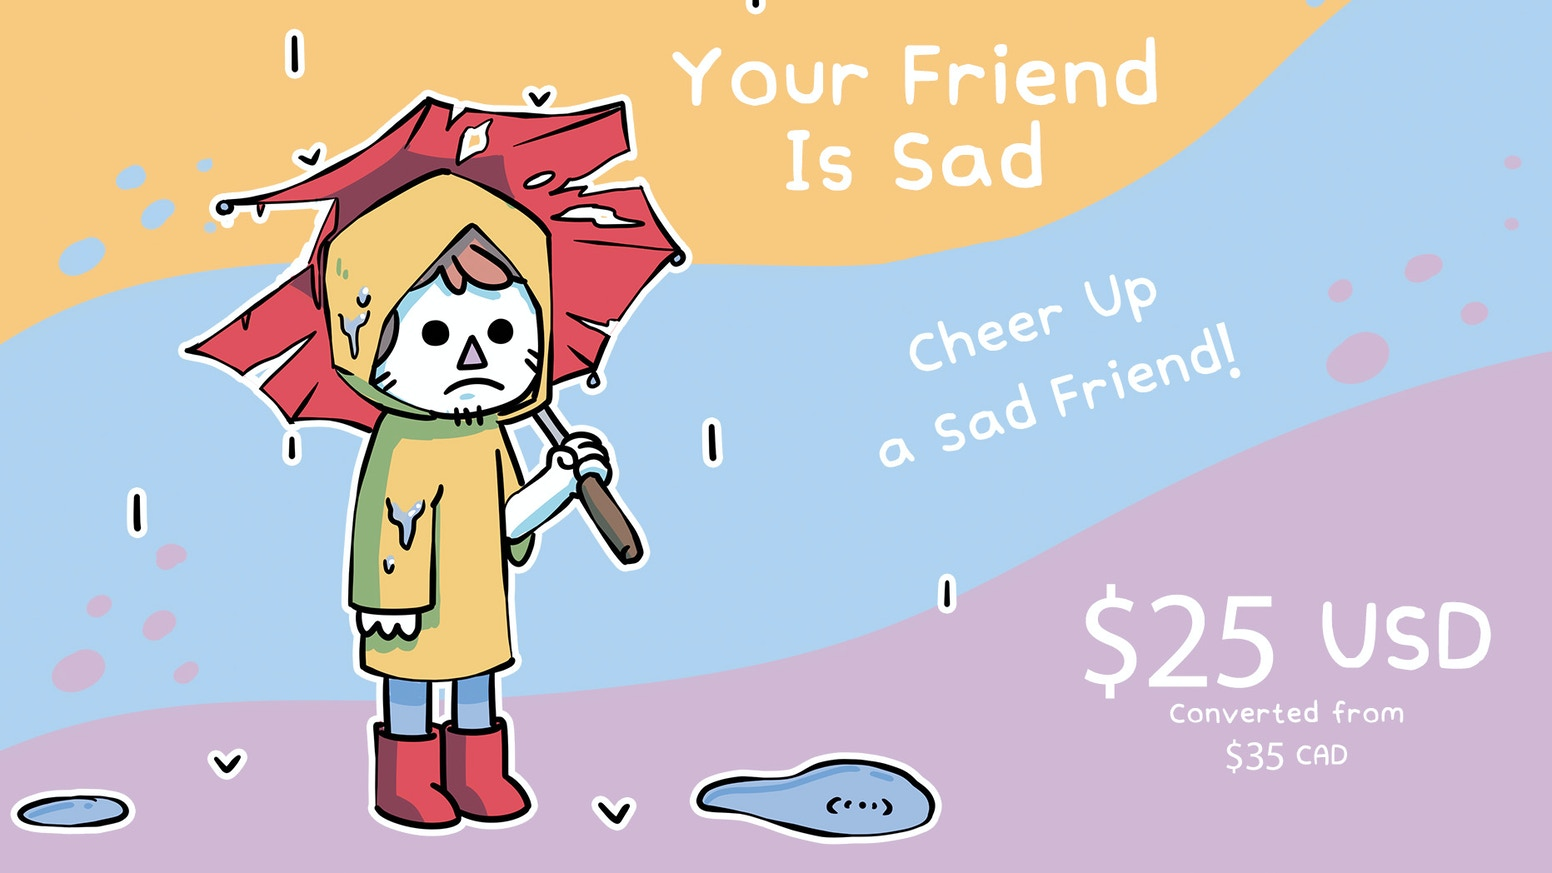 A game about cheering up a sad friend.